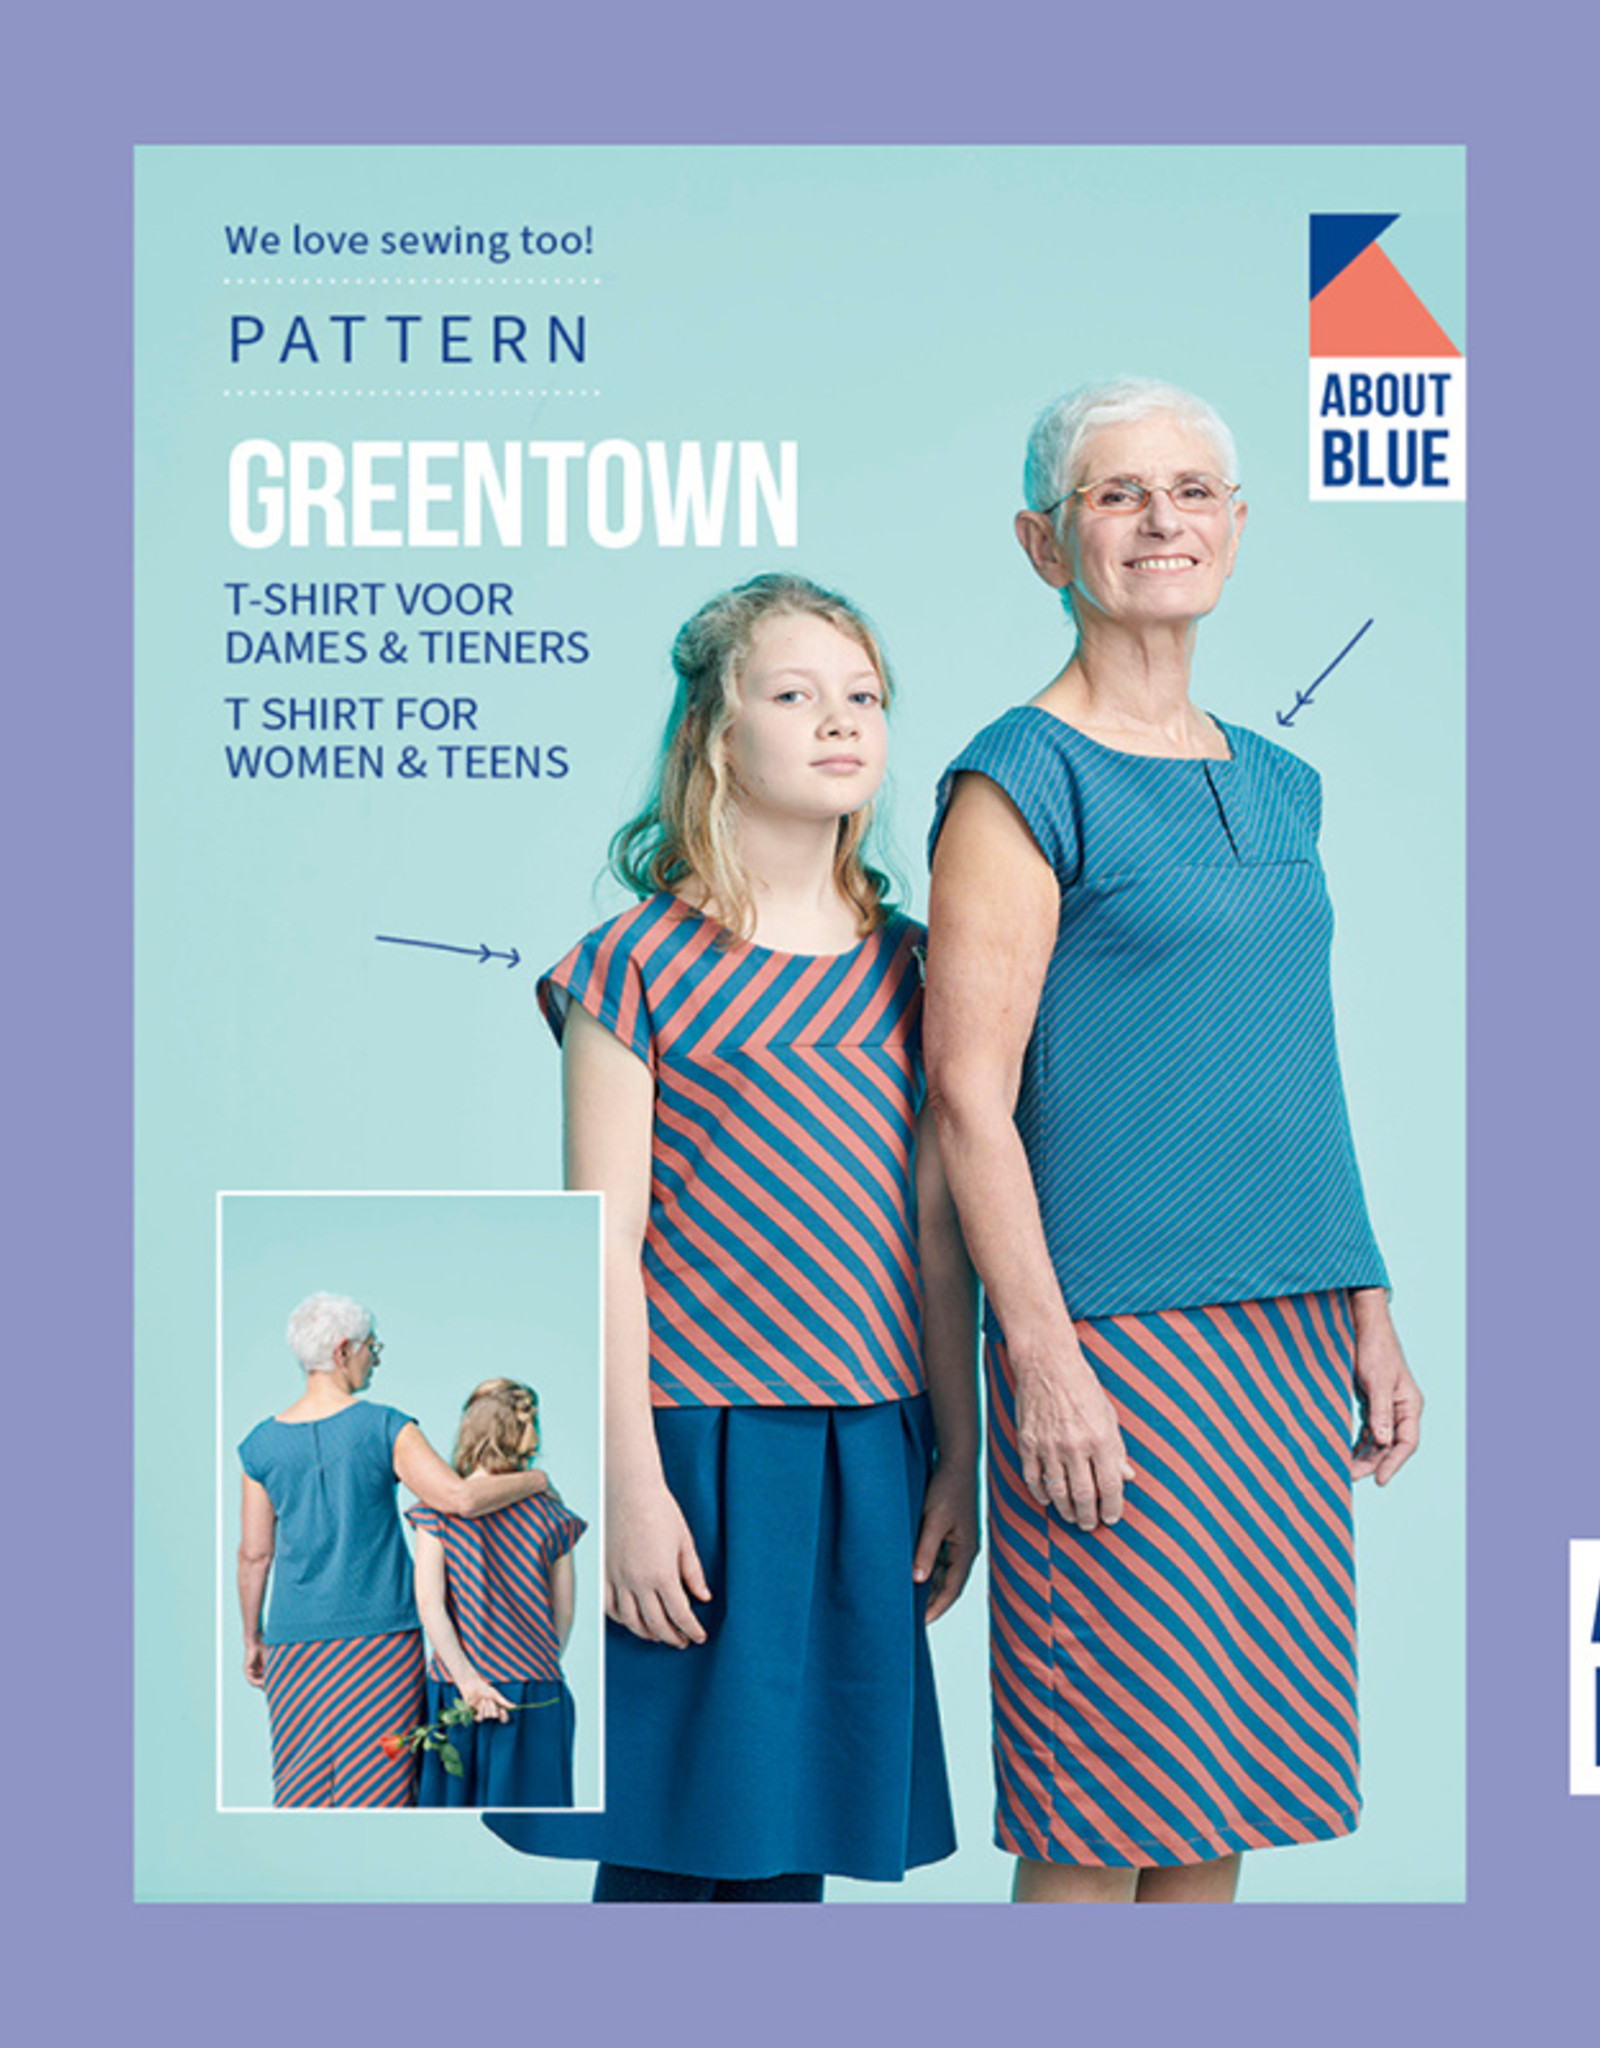 About Blue Fabrics Greentown T-shirt voor dames & tieners